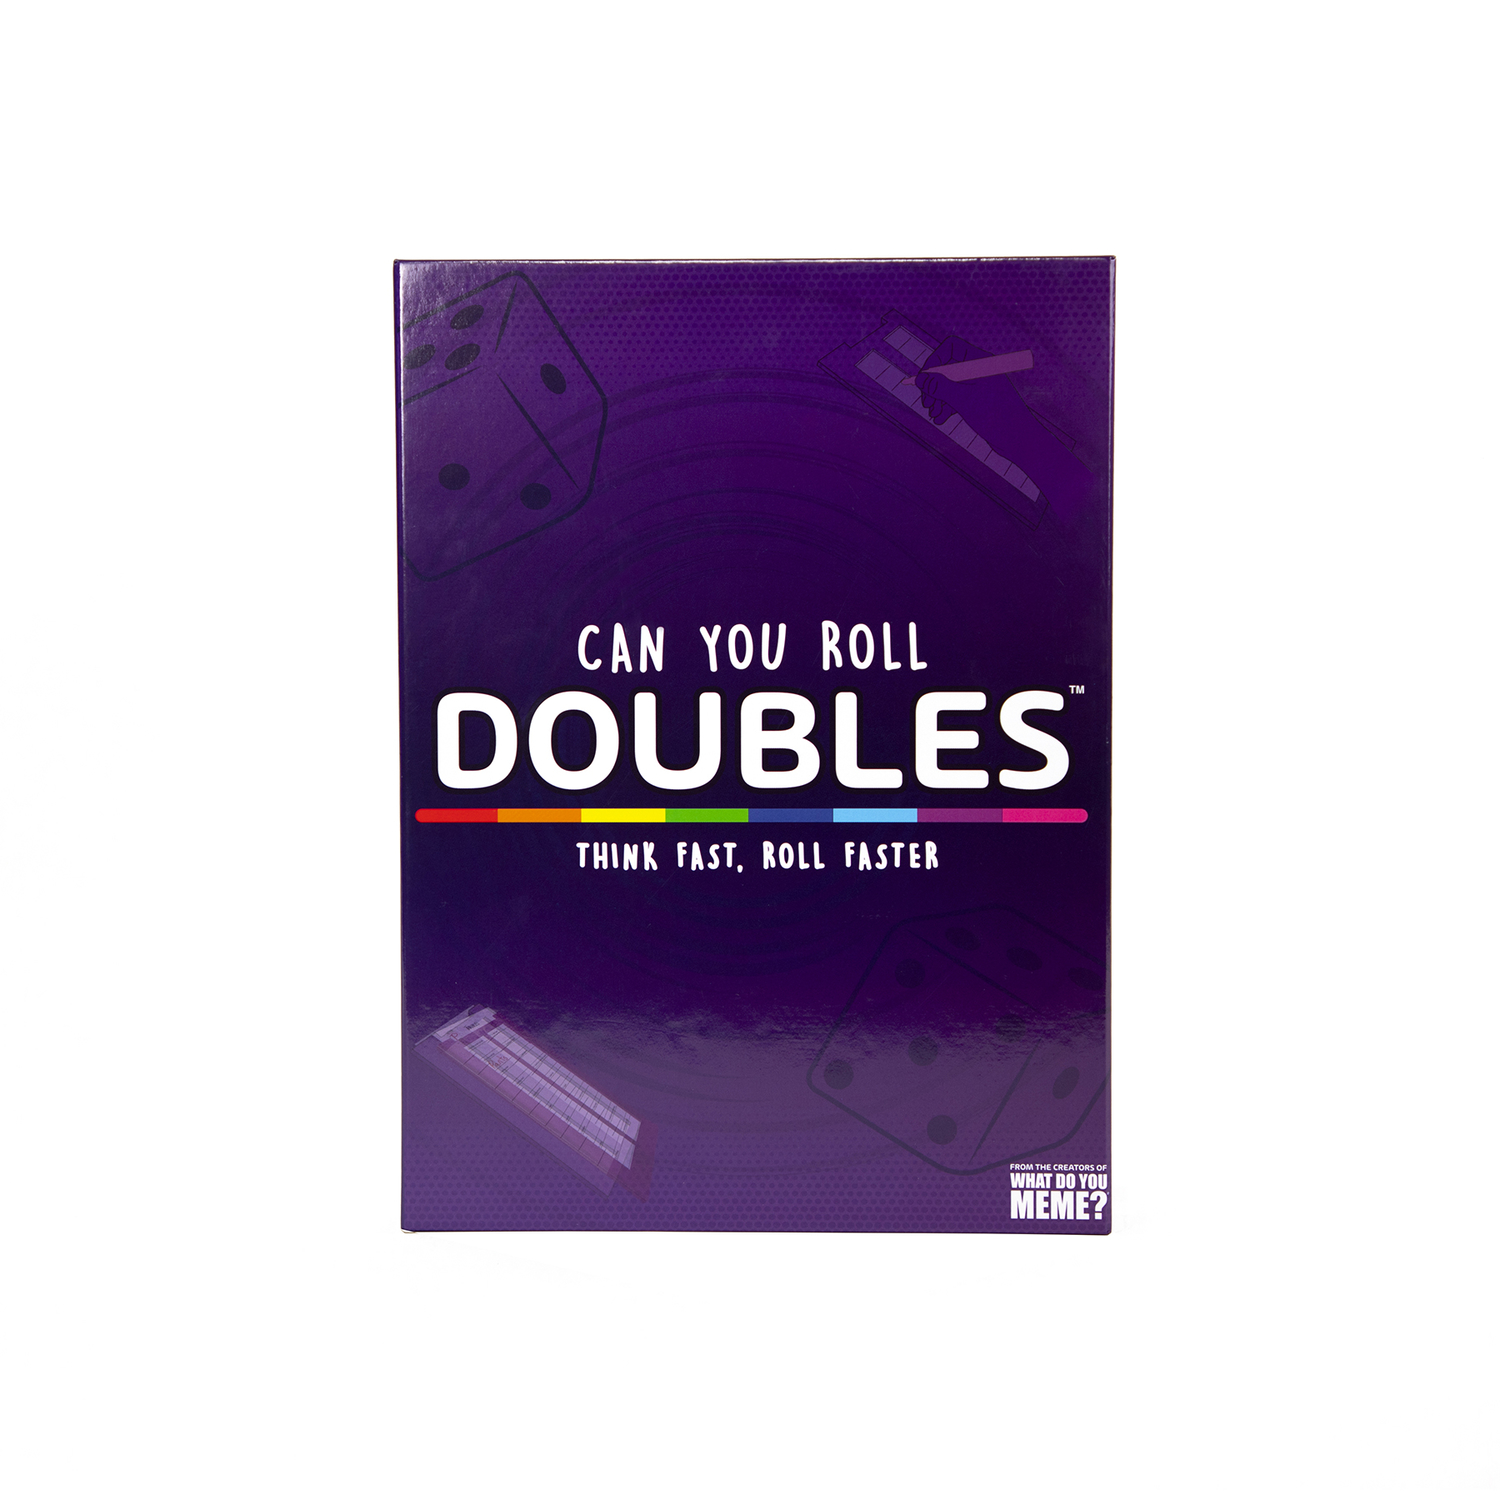 What do you Meme Doubles Board and Dice Game Multicolored Doubles! is the rapid-fire, high-pressure game where players compete to fill out the category sheet before their opponents can roll doubles and steal the board.